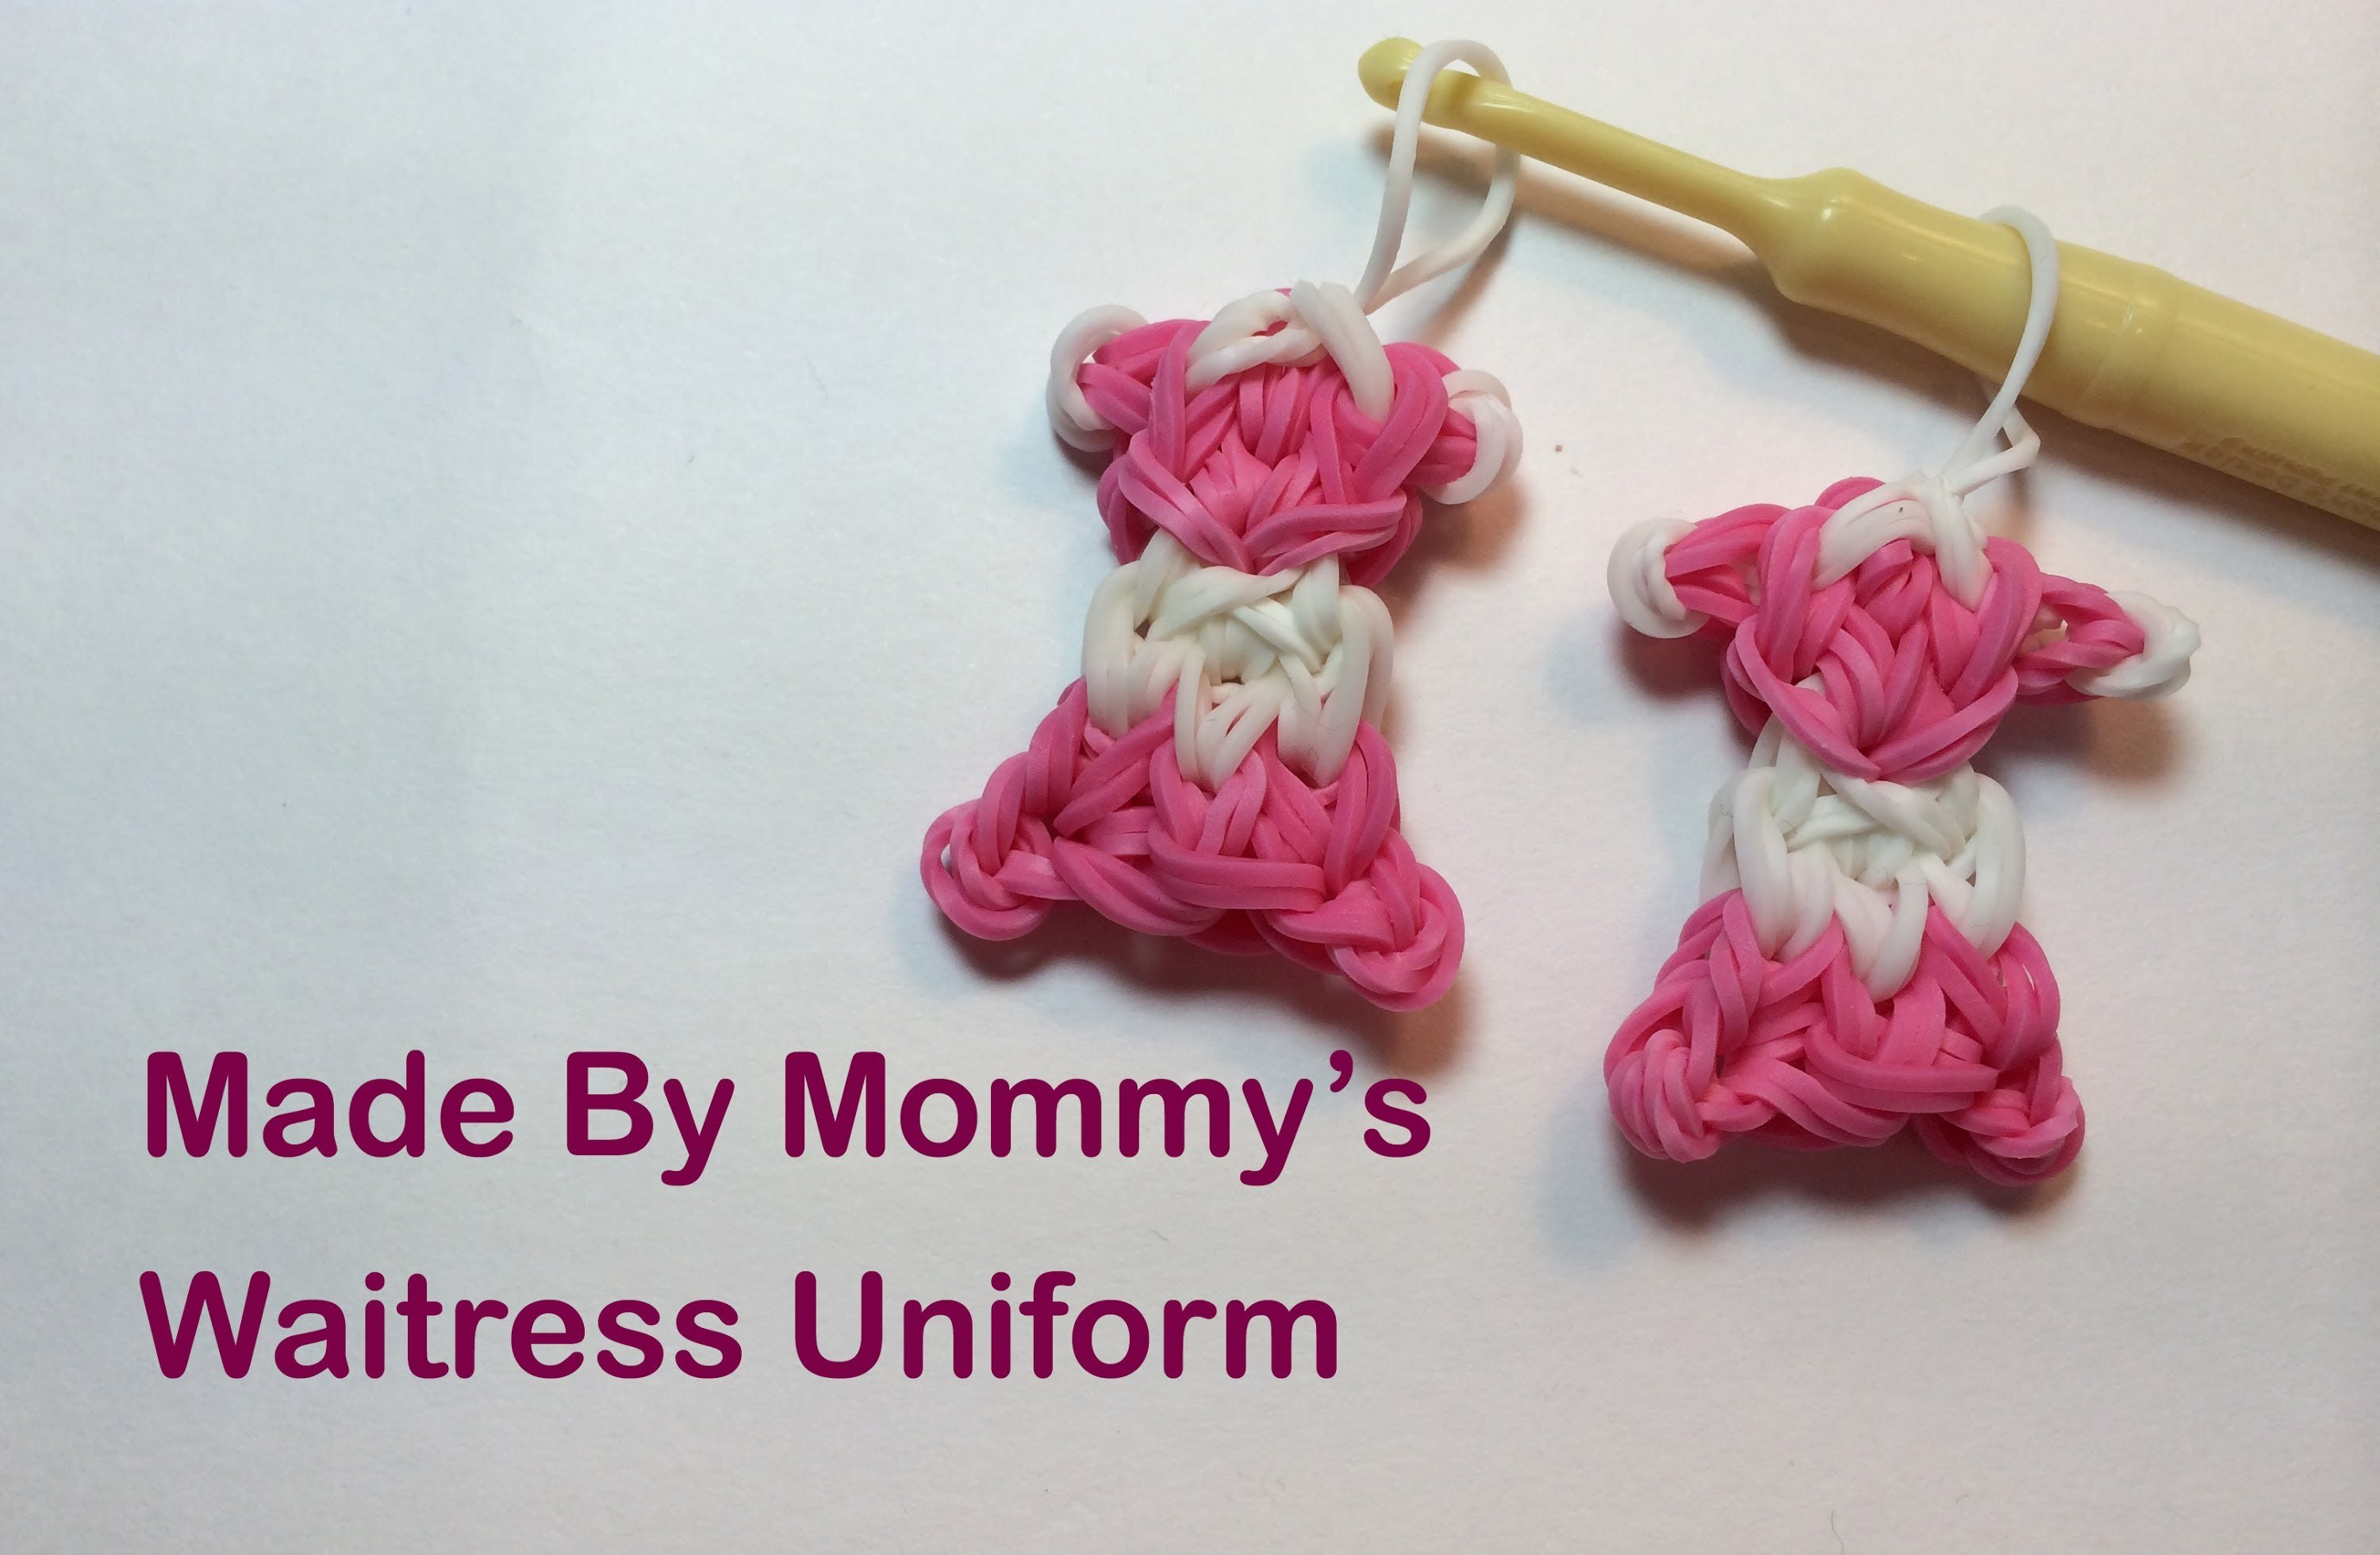 Waitress Uniform Charm on the Rainbow Loom